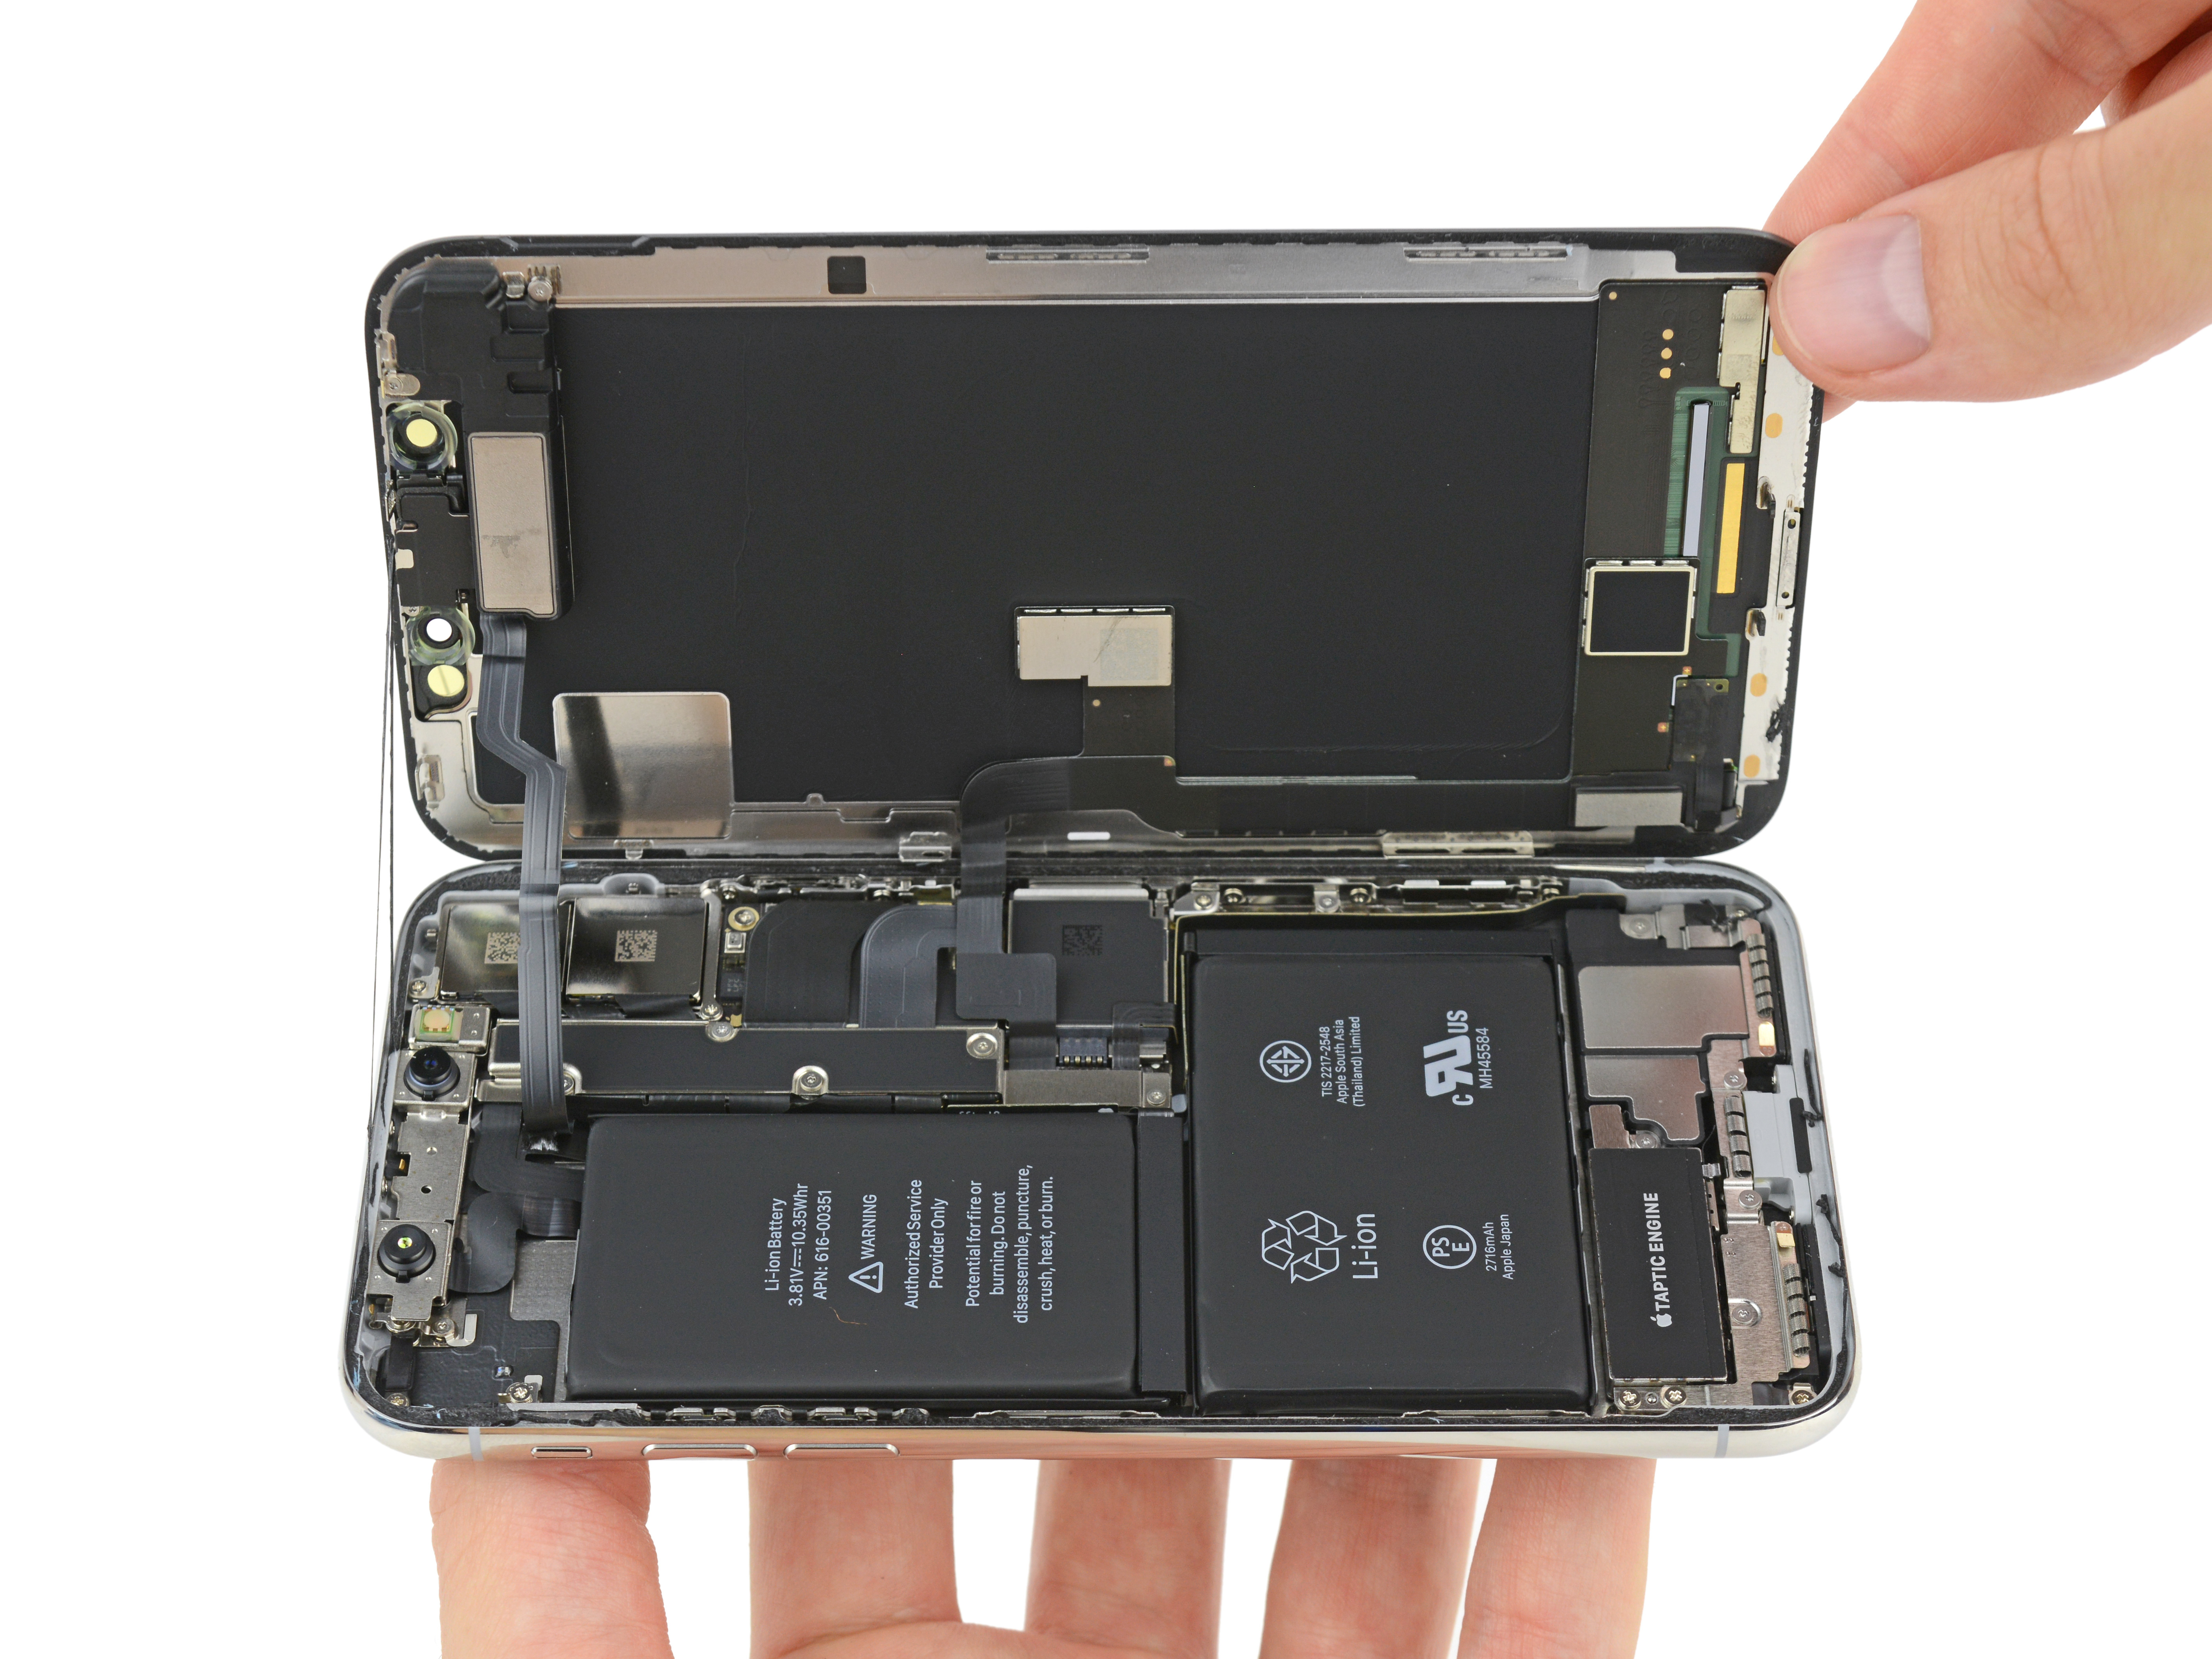 Iphone X Teardown Highlights Radical New Internals Two Cell Battery Pcb Layout Of Mobile Phone And Ipod Charger Circuit This